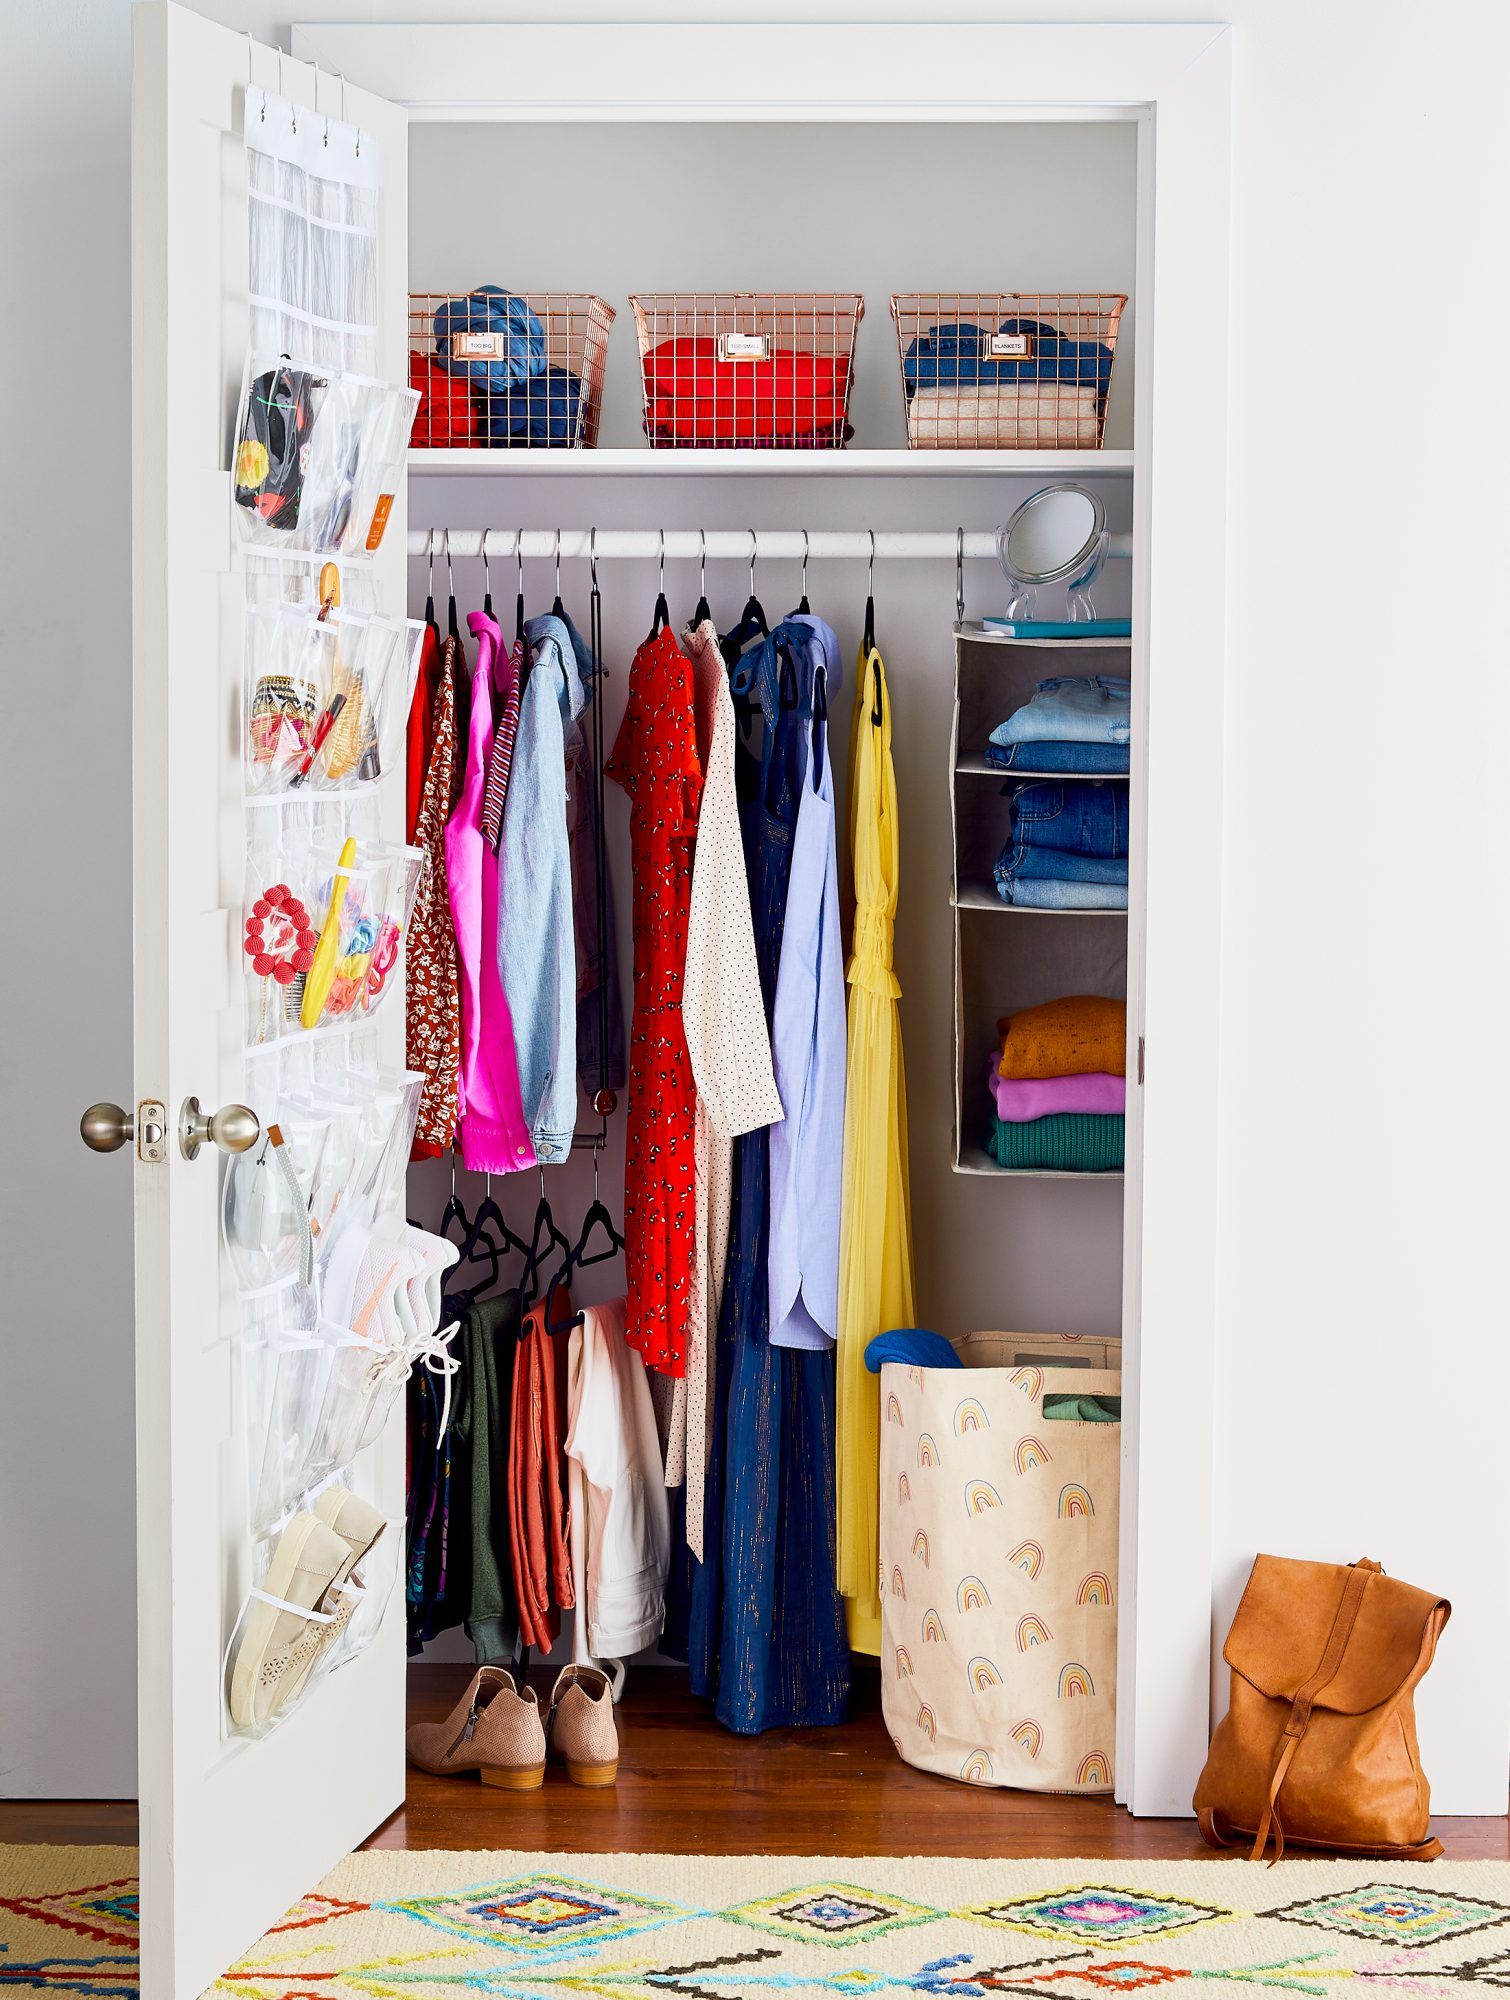 The Best Kids' Closet Organizers, According to the Pros